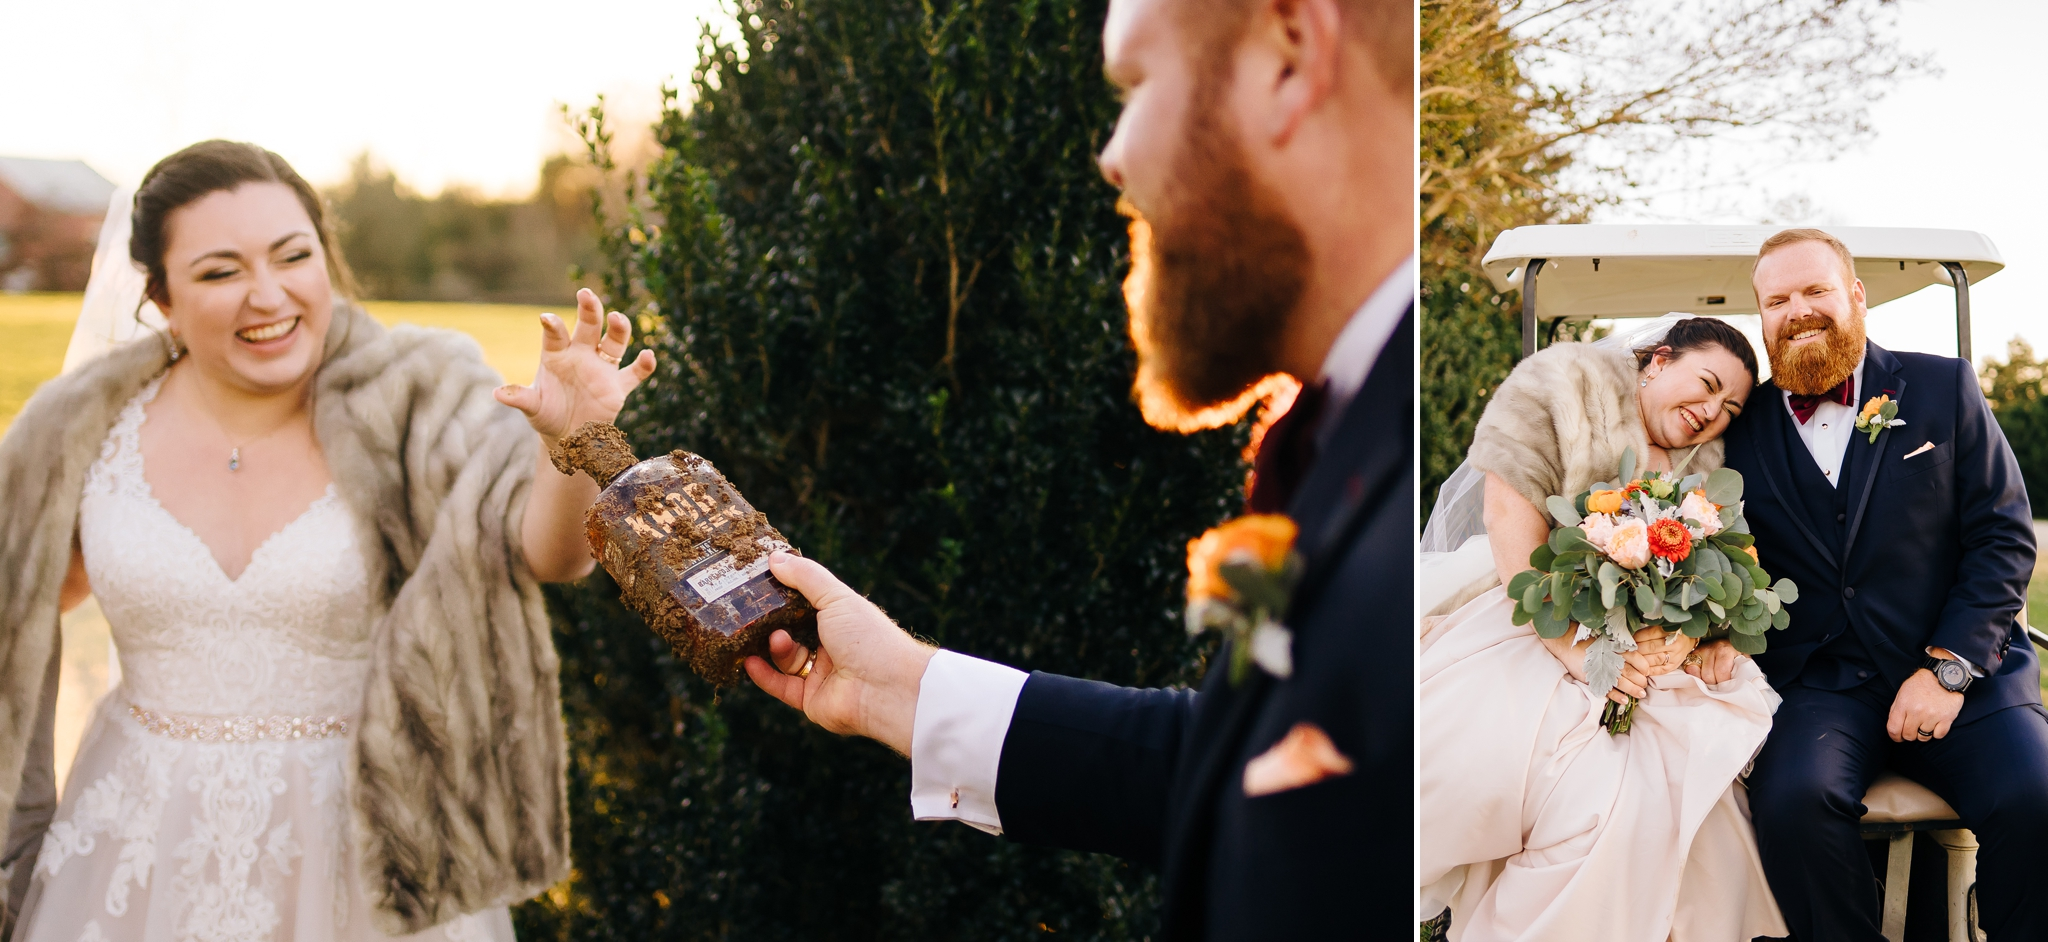 Bride_and_groom_bourbon_at_wolftrap_farms_by_jonathan_and_hannah_photography